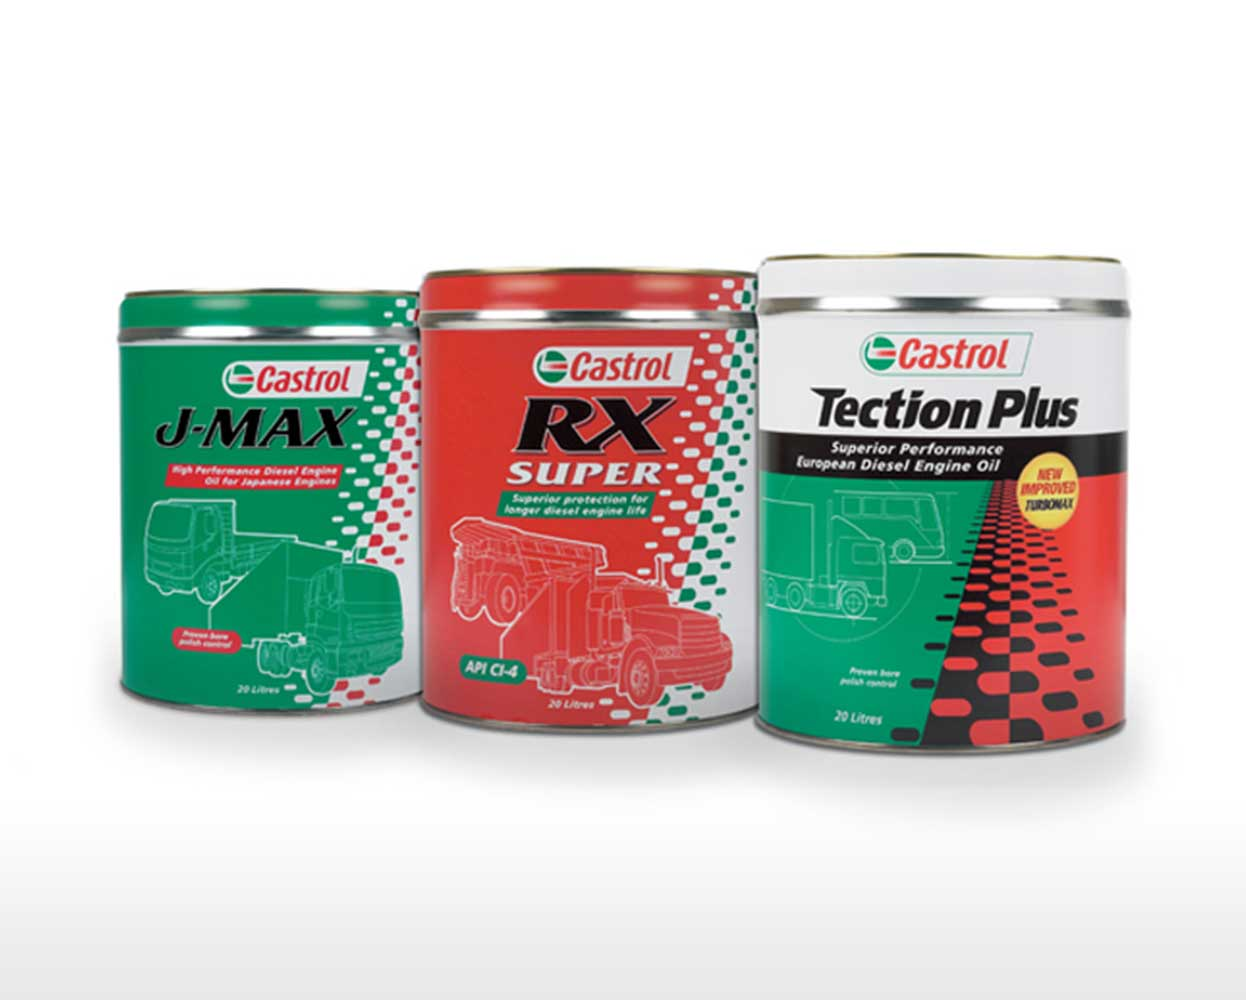 Castrol packaging 20L drum